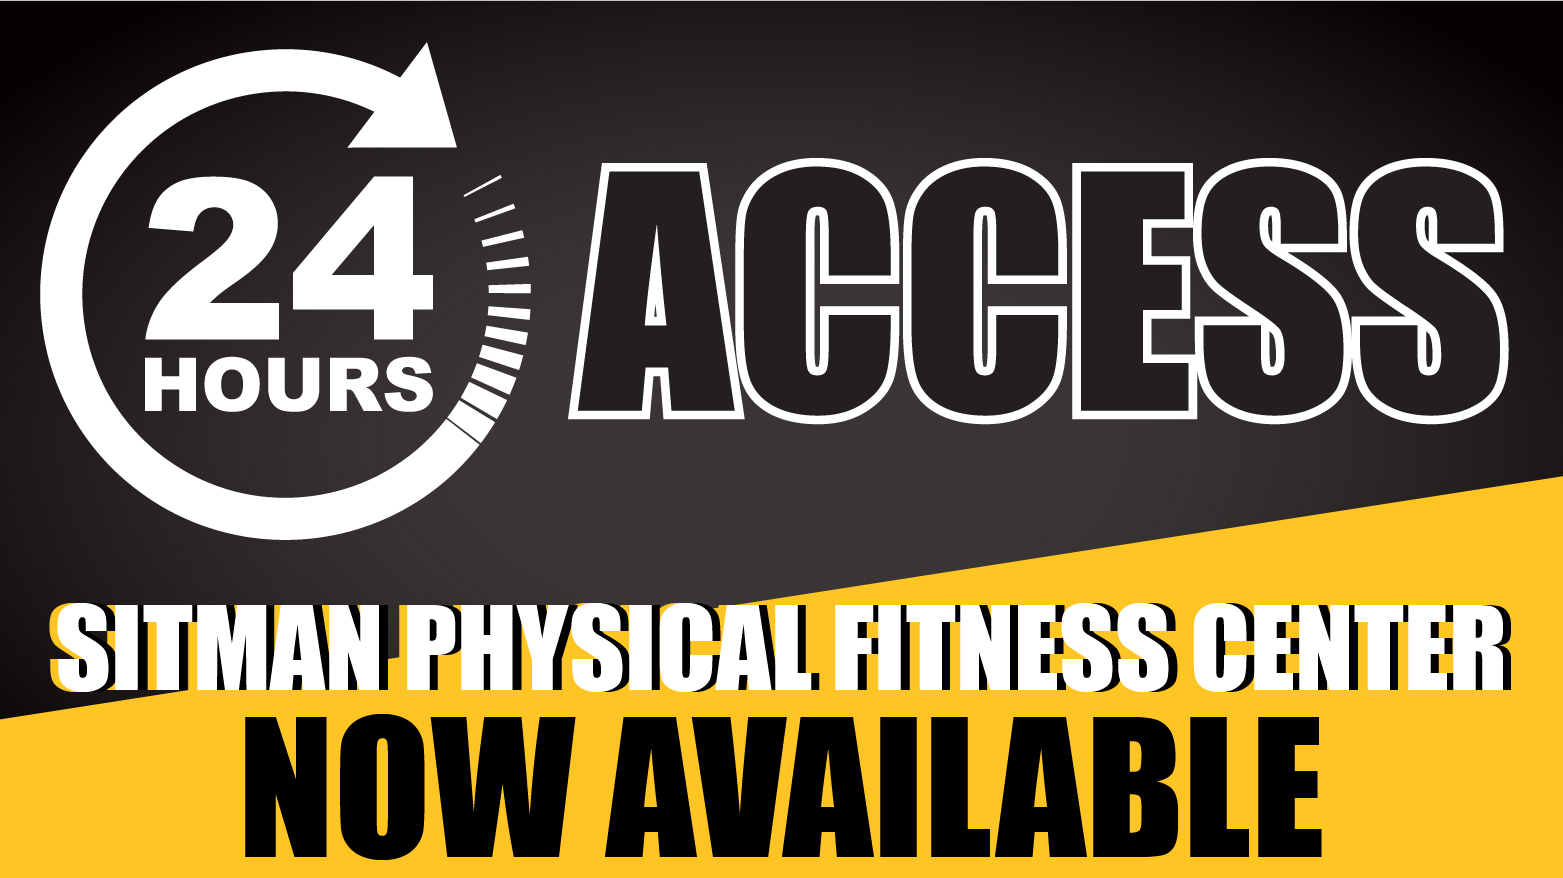 24 Hour Access at Sitman Physical Fitness Center